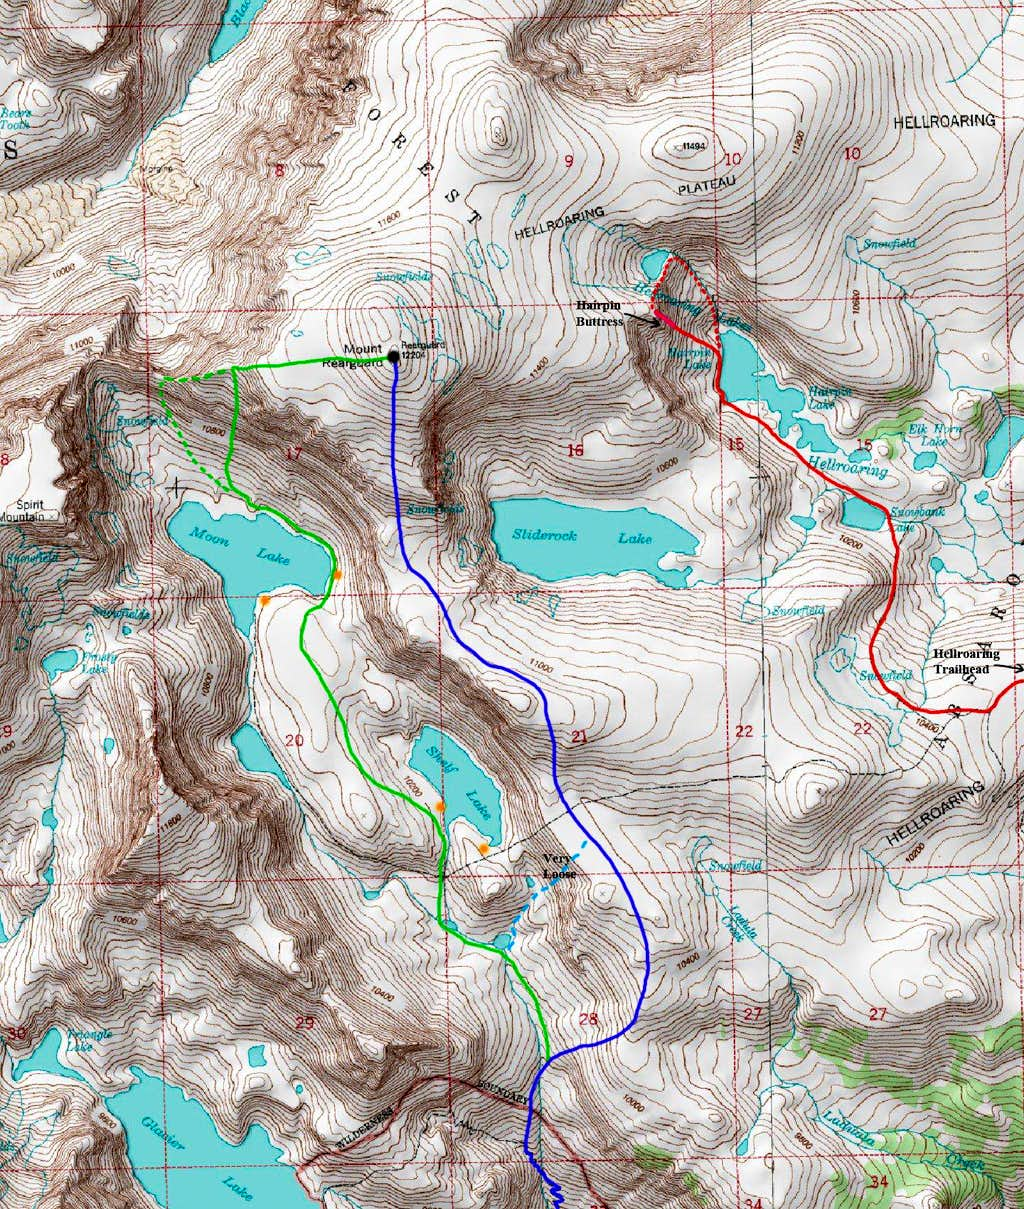 Mount Rearguard Map